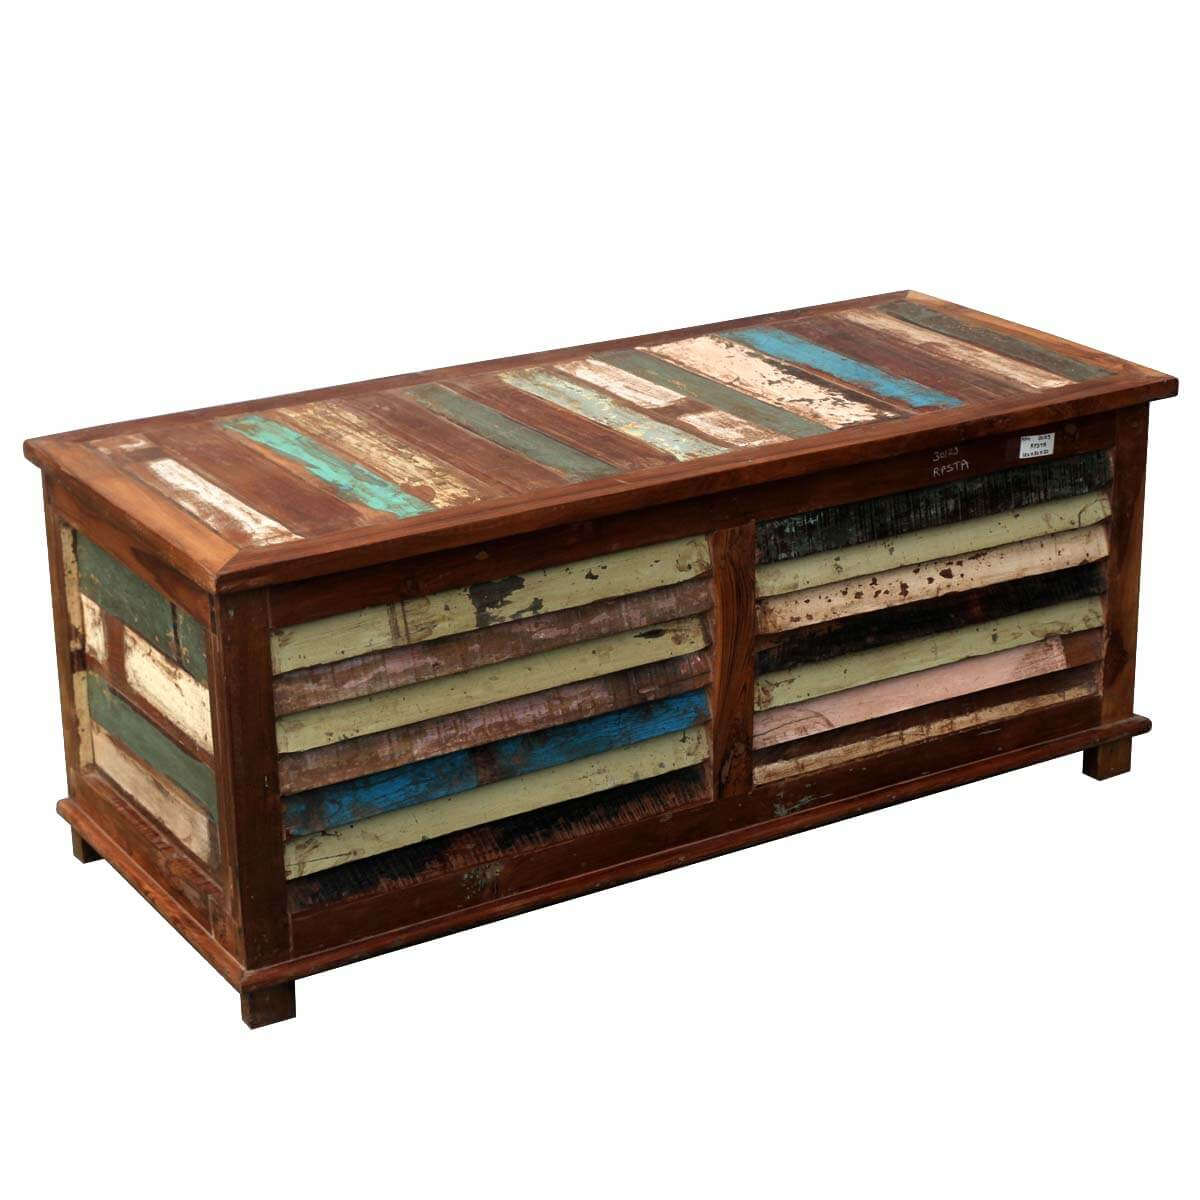 Wood Coffee Table With Storage Rustic Reclaimed Wood Multi Color Coffee Table Storage